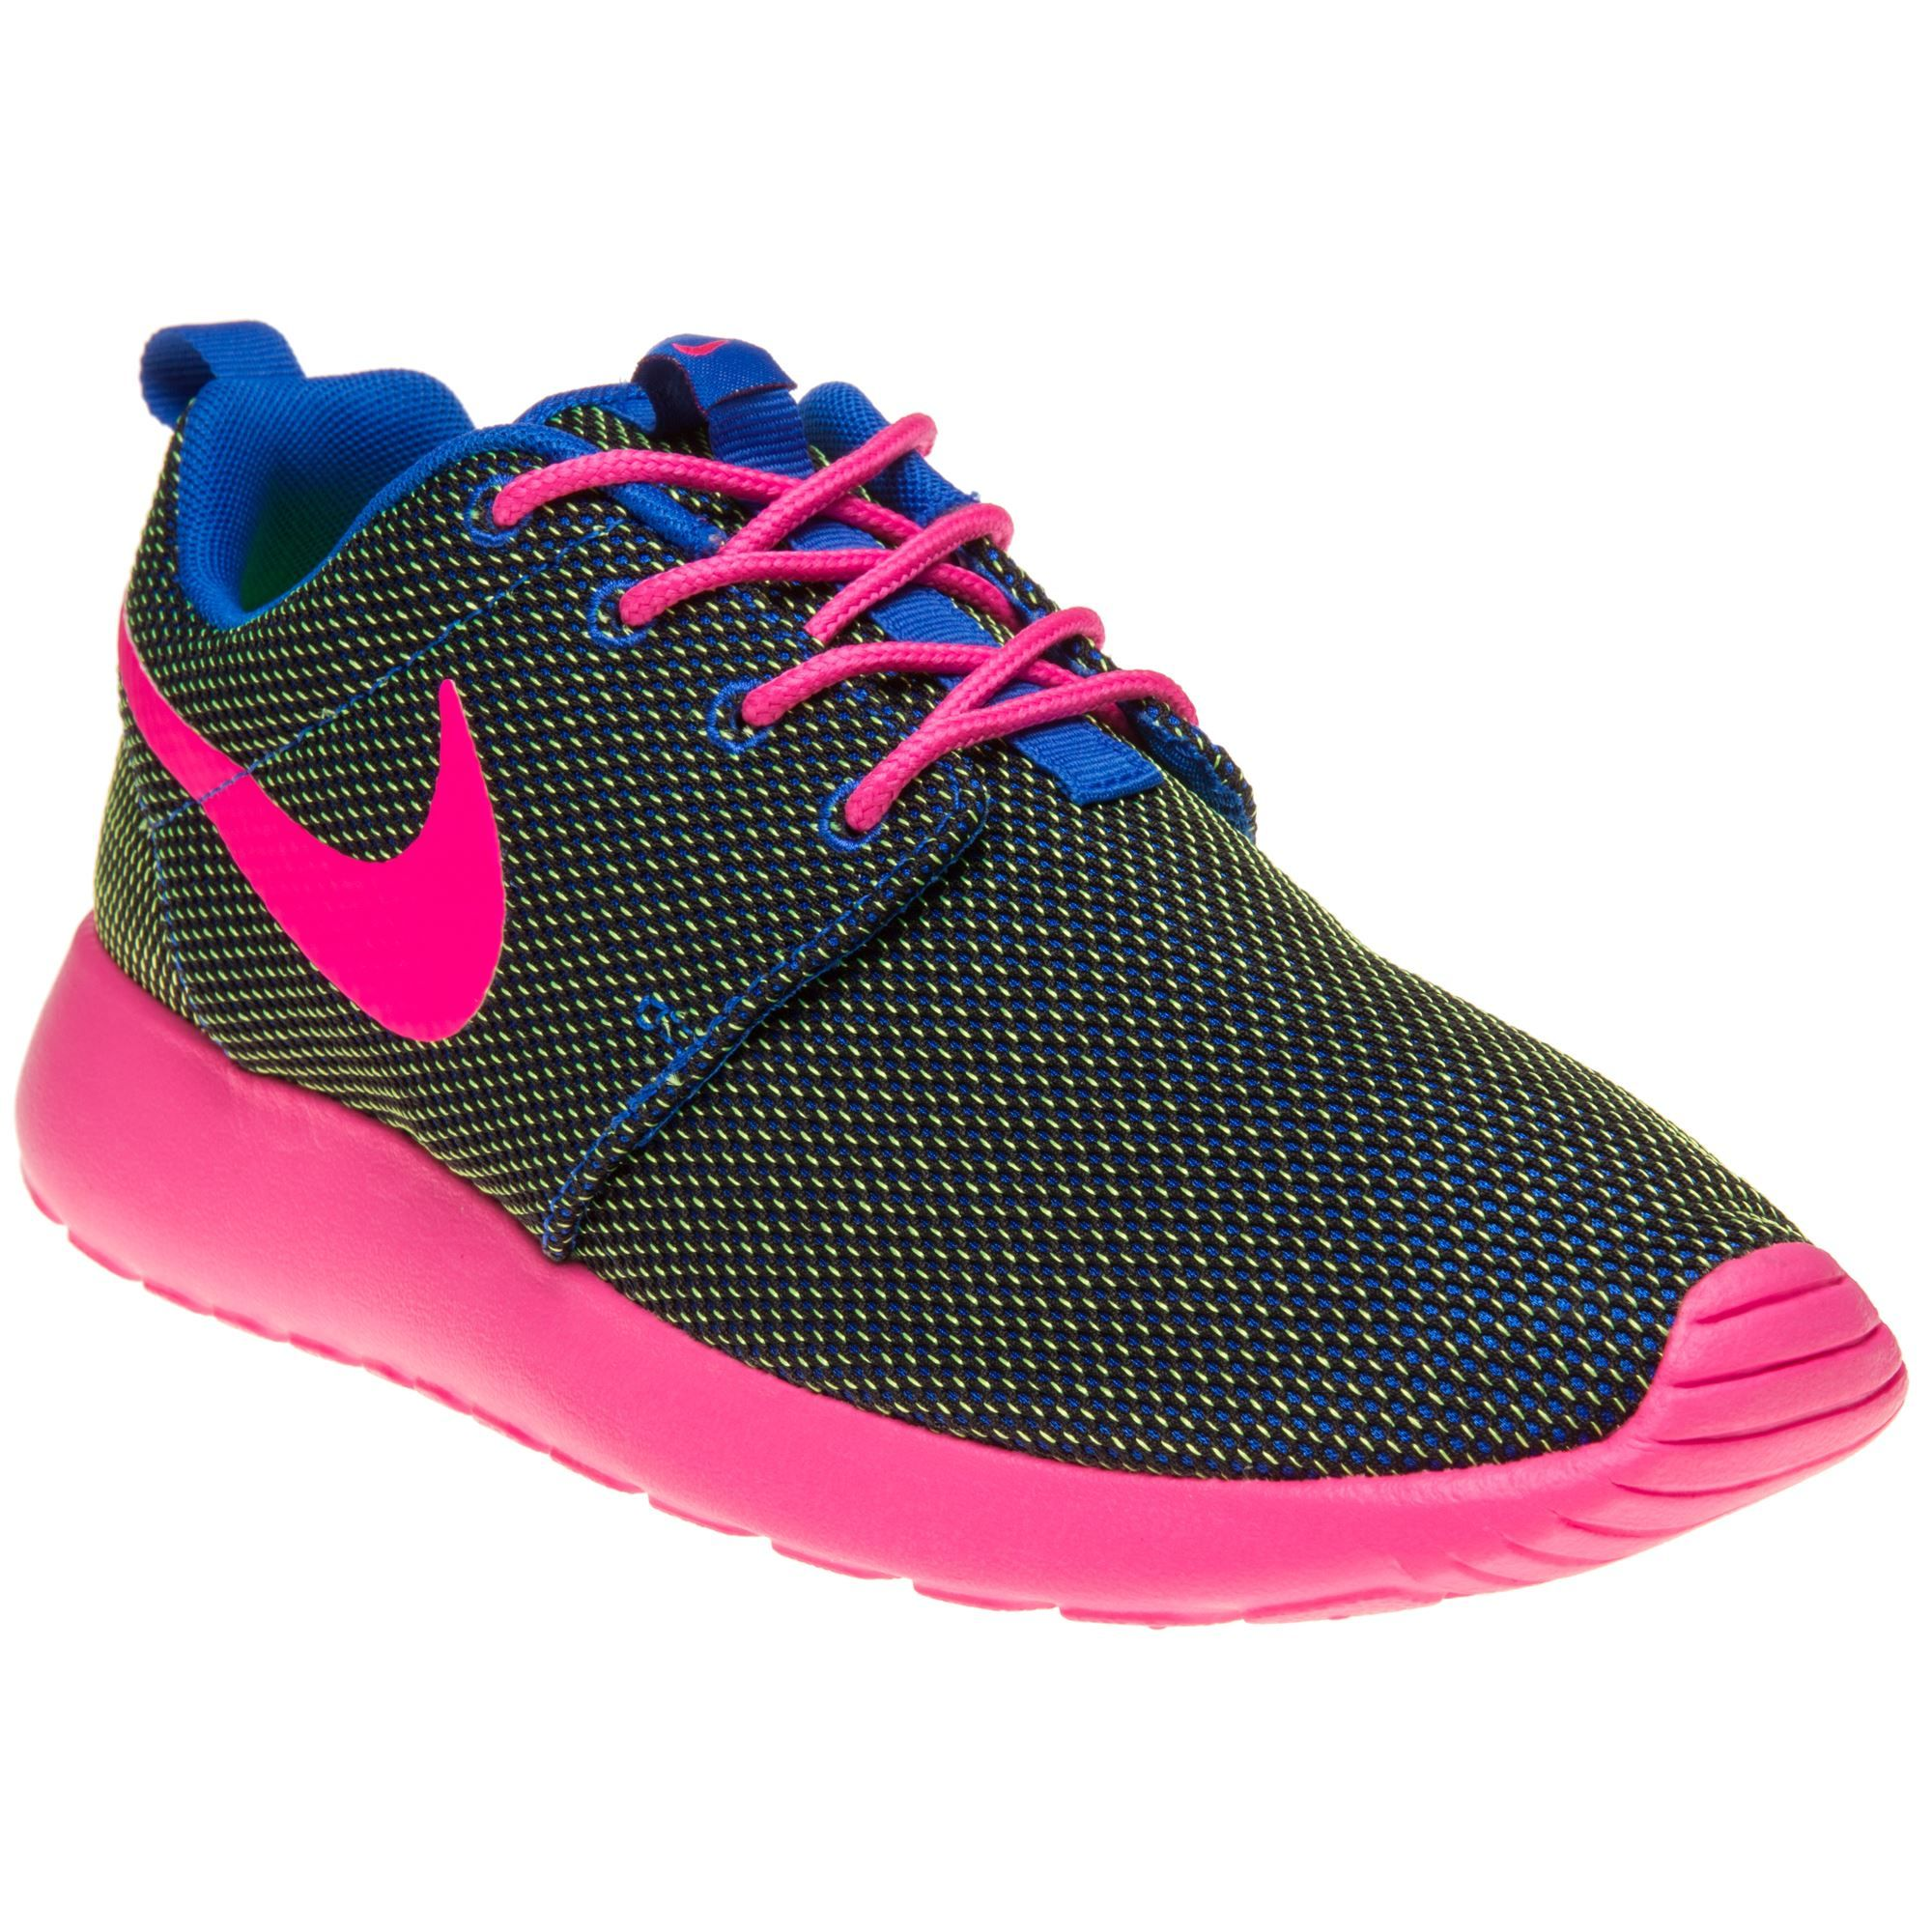 official photos be7d1 27454 Nike Roshe Run Trainers for women